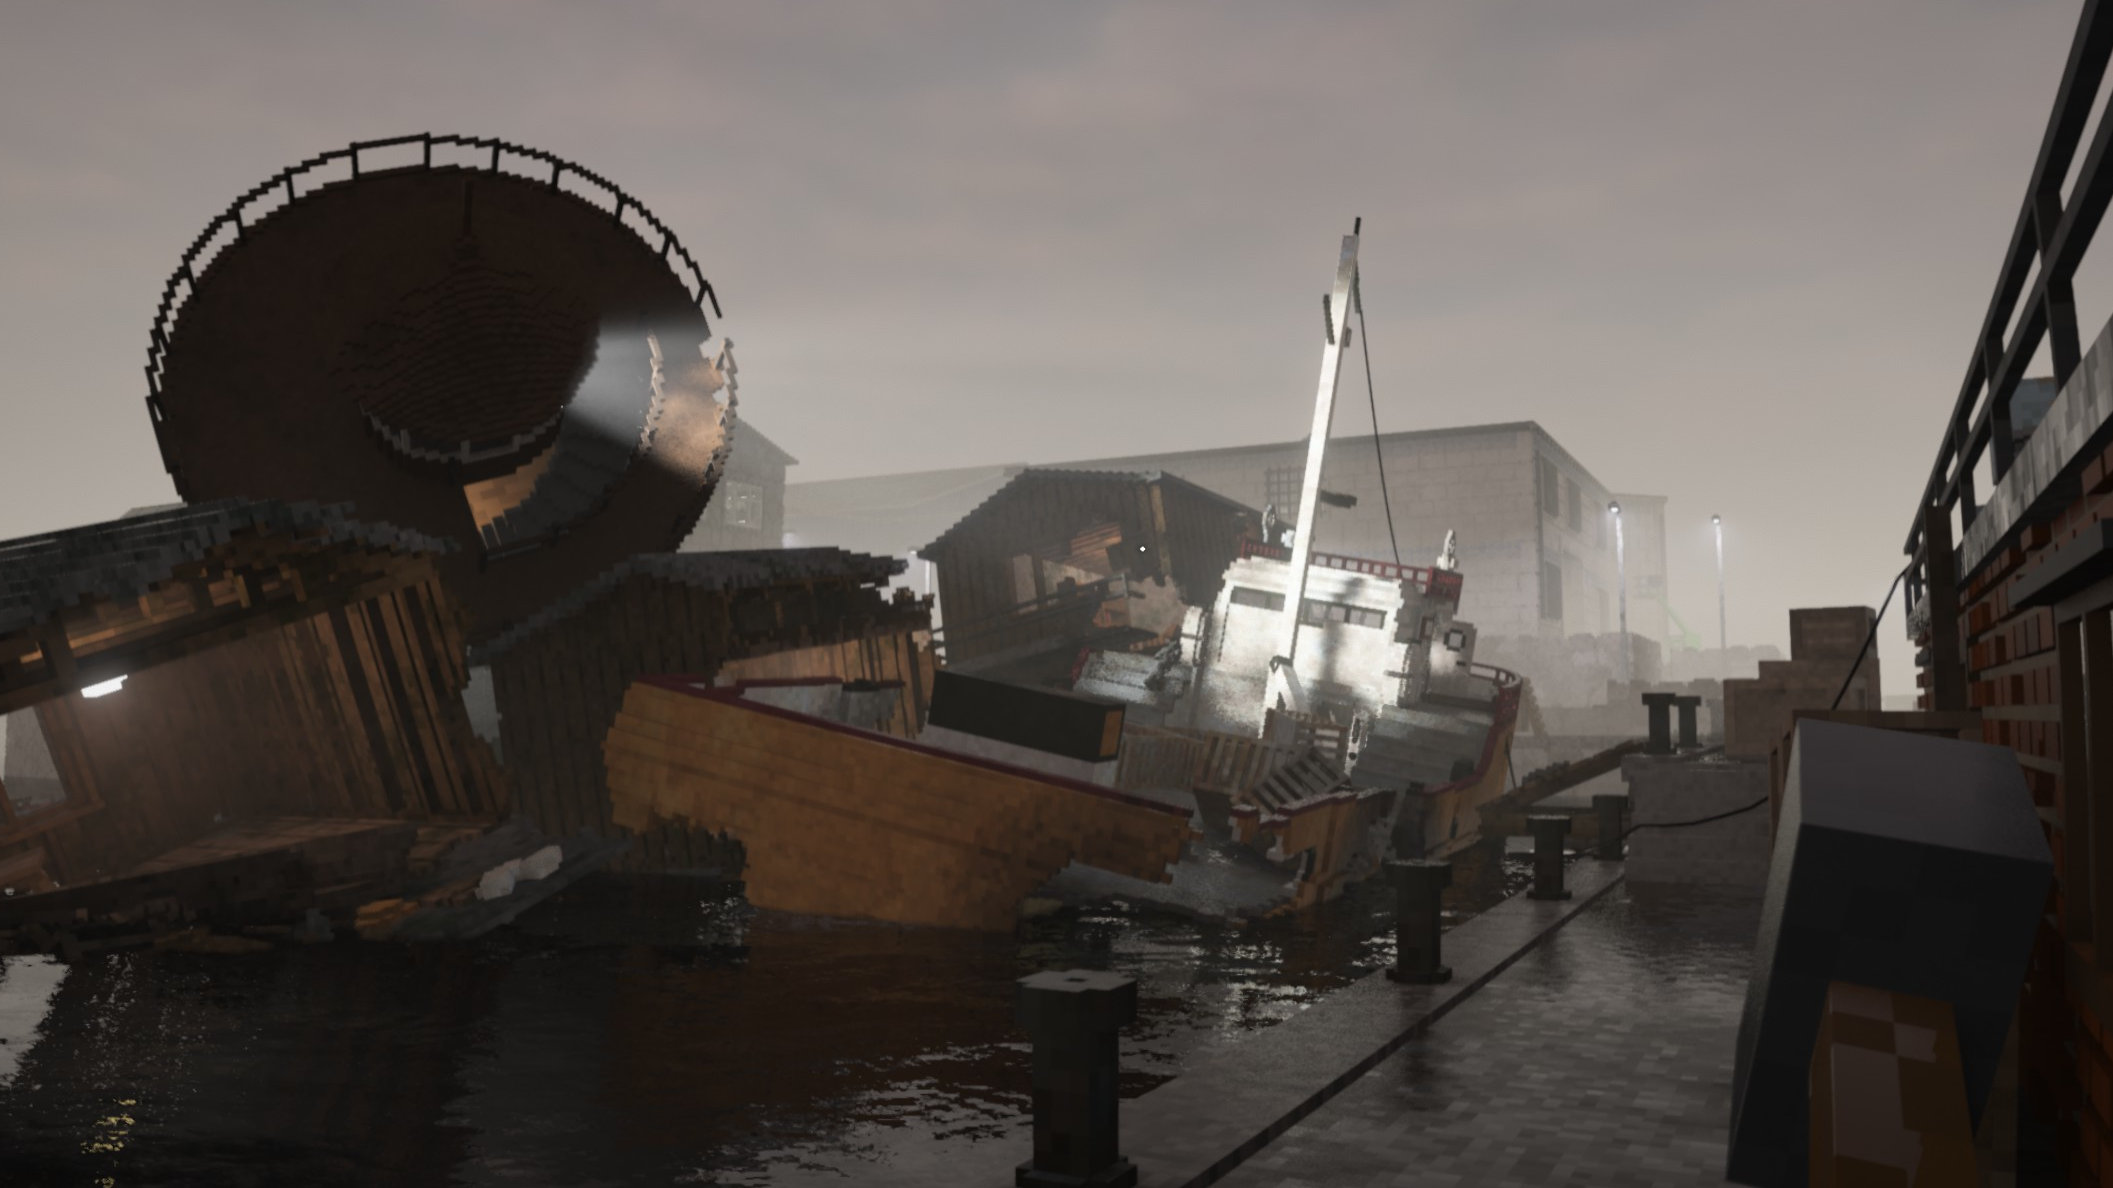 A view of a harbour in Teardown, where much has been torn down. A boat is half sunk, and there appears to be most of a lighthouse tower on top of it